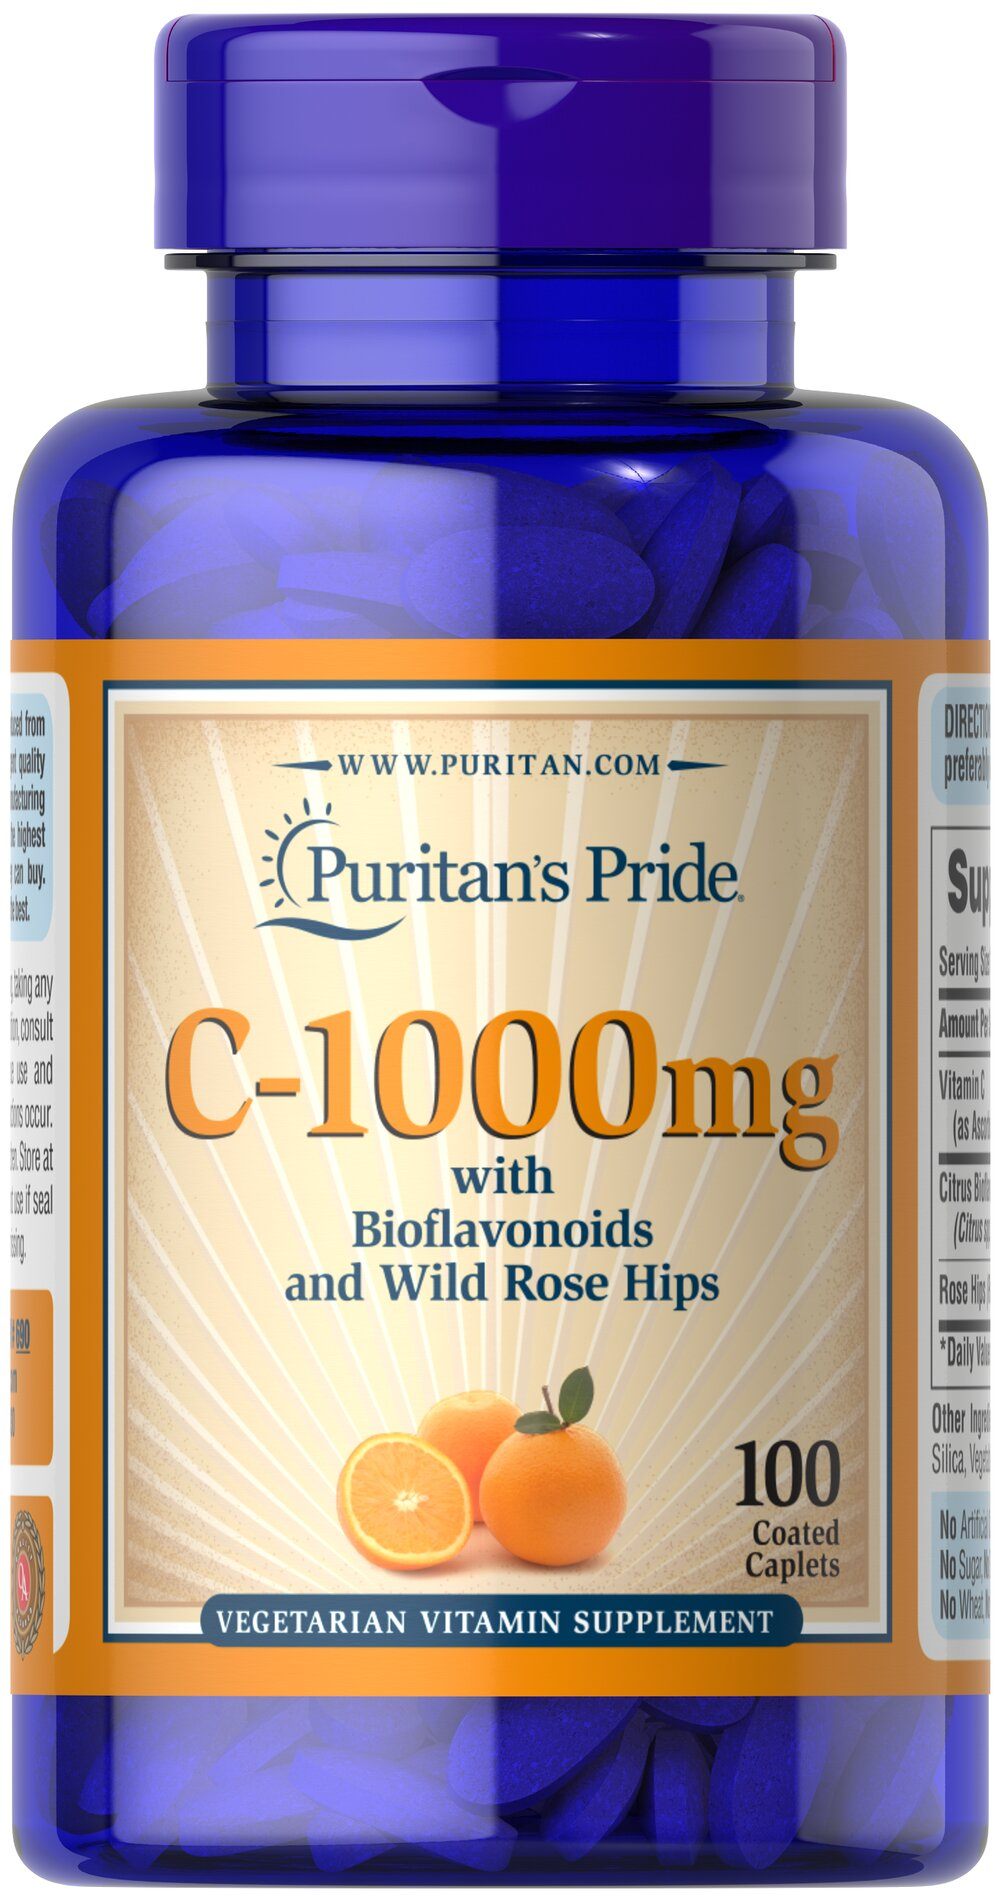 Vitamin C-1000 mg with Bioflavonoids & Rose Hips  100 Caplets 1000 mg $10.99